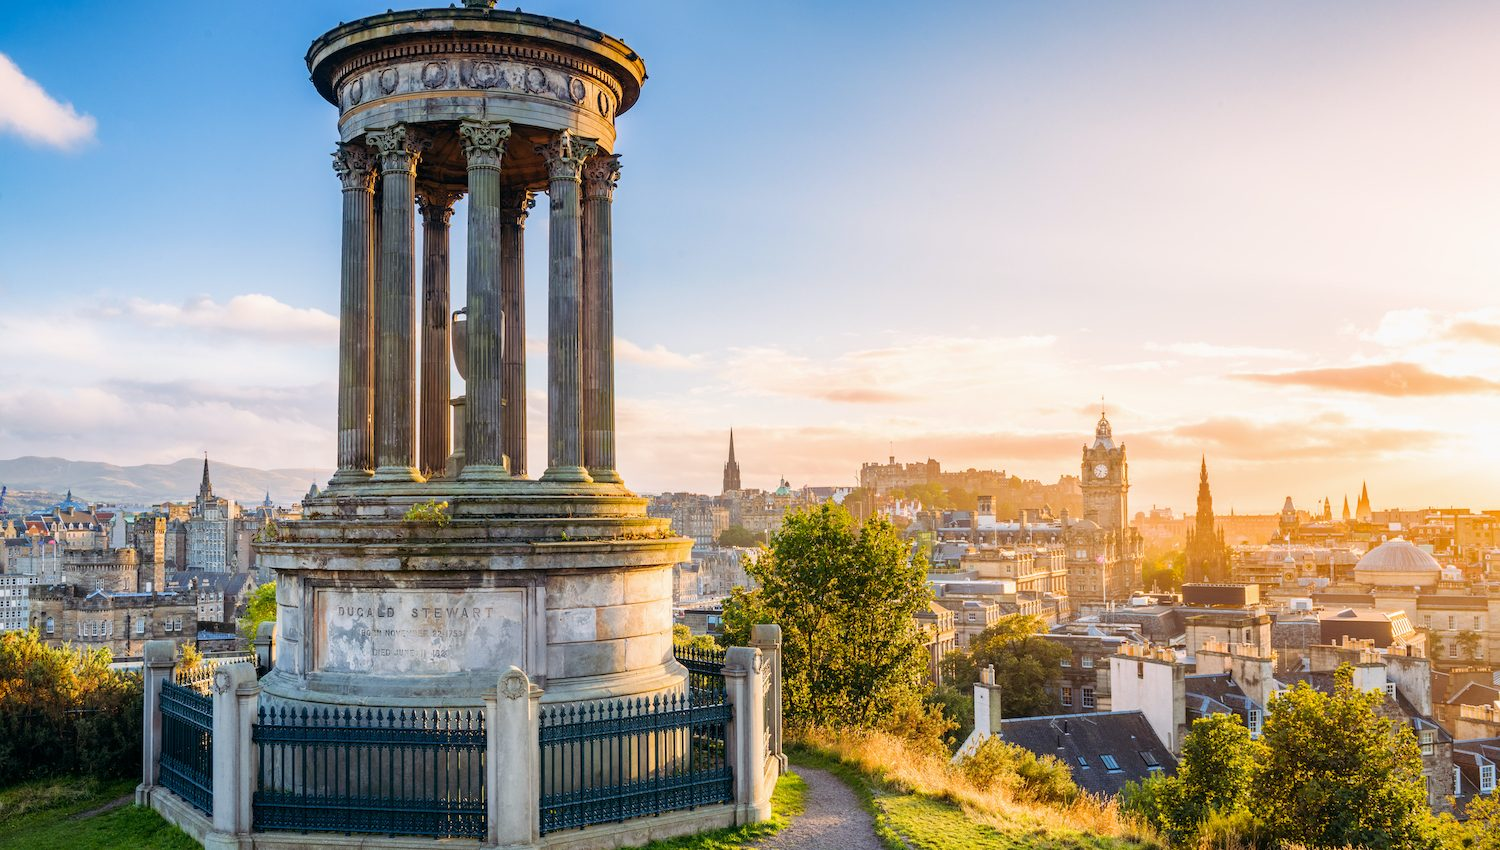 ESPLS   A view over central Edinburgh at sunset, taken from Calton Hill, with the stone memorial to  Dugald Stewart (1753 - 1828) in the foreground.